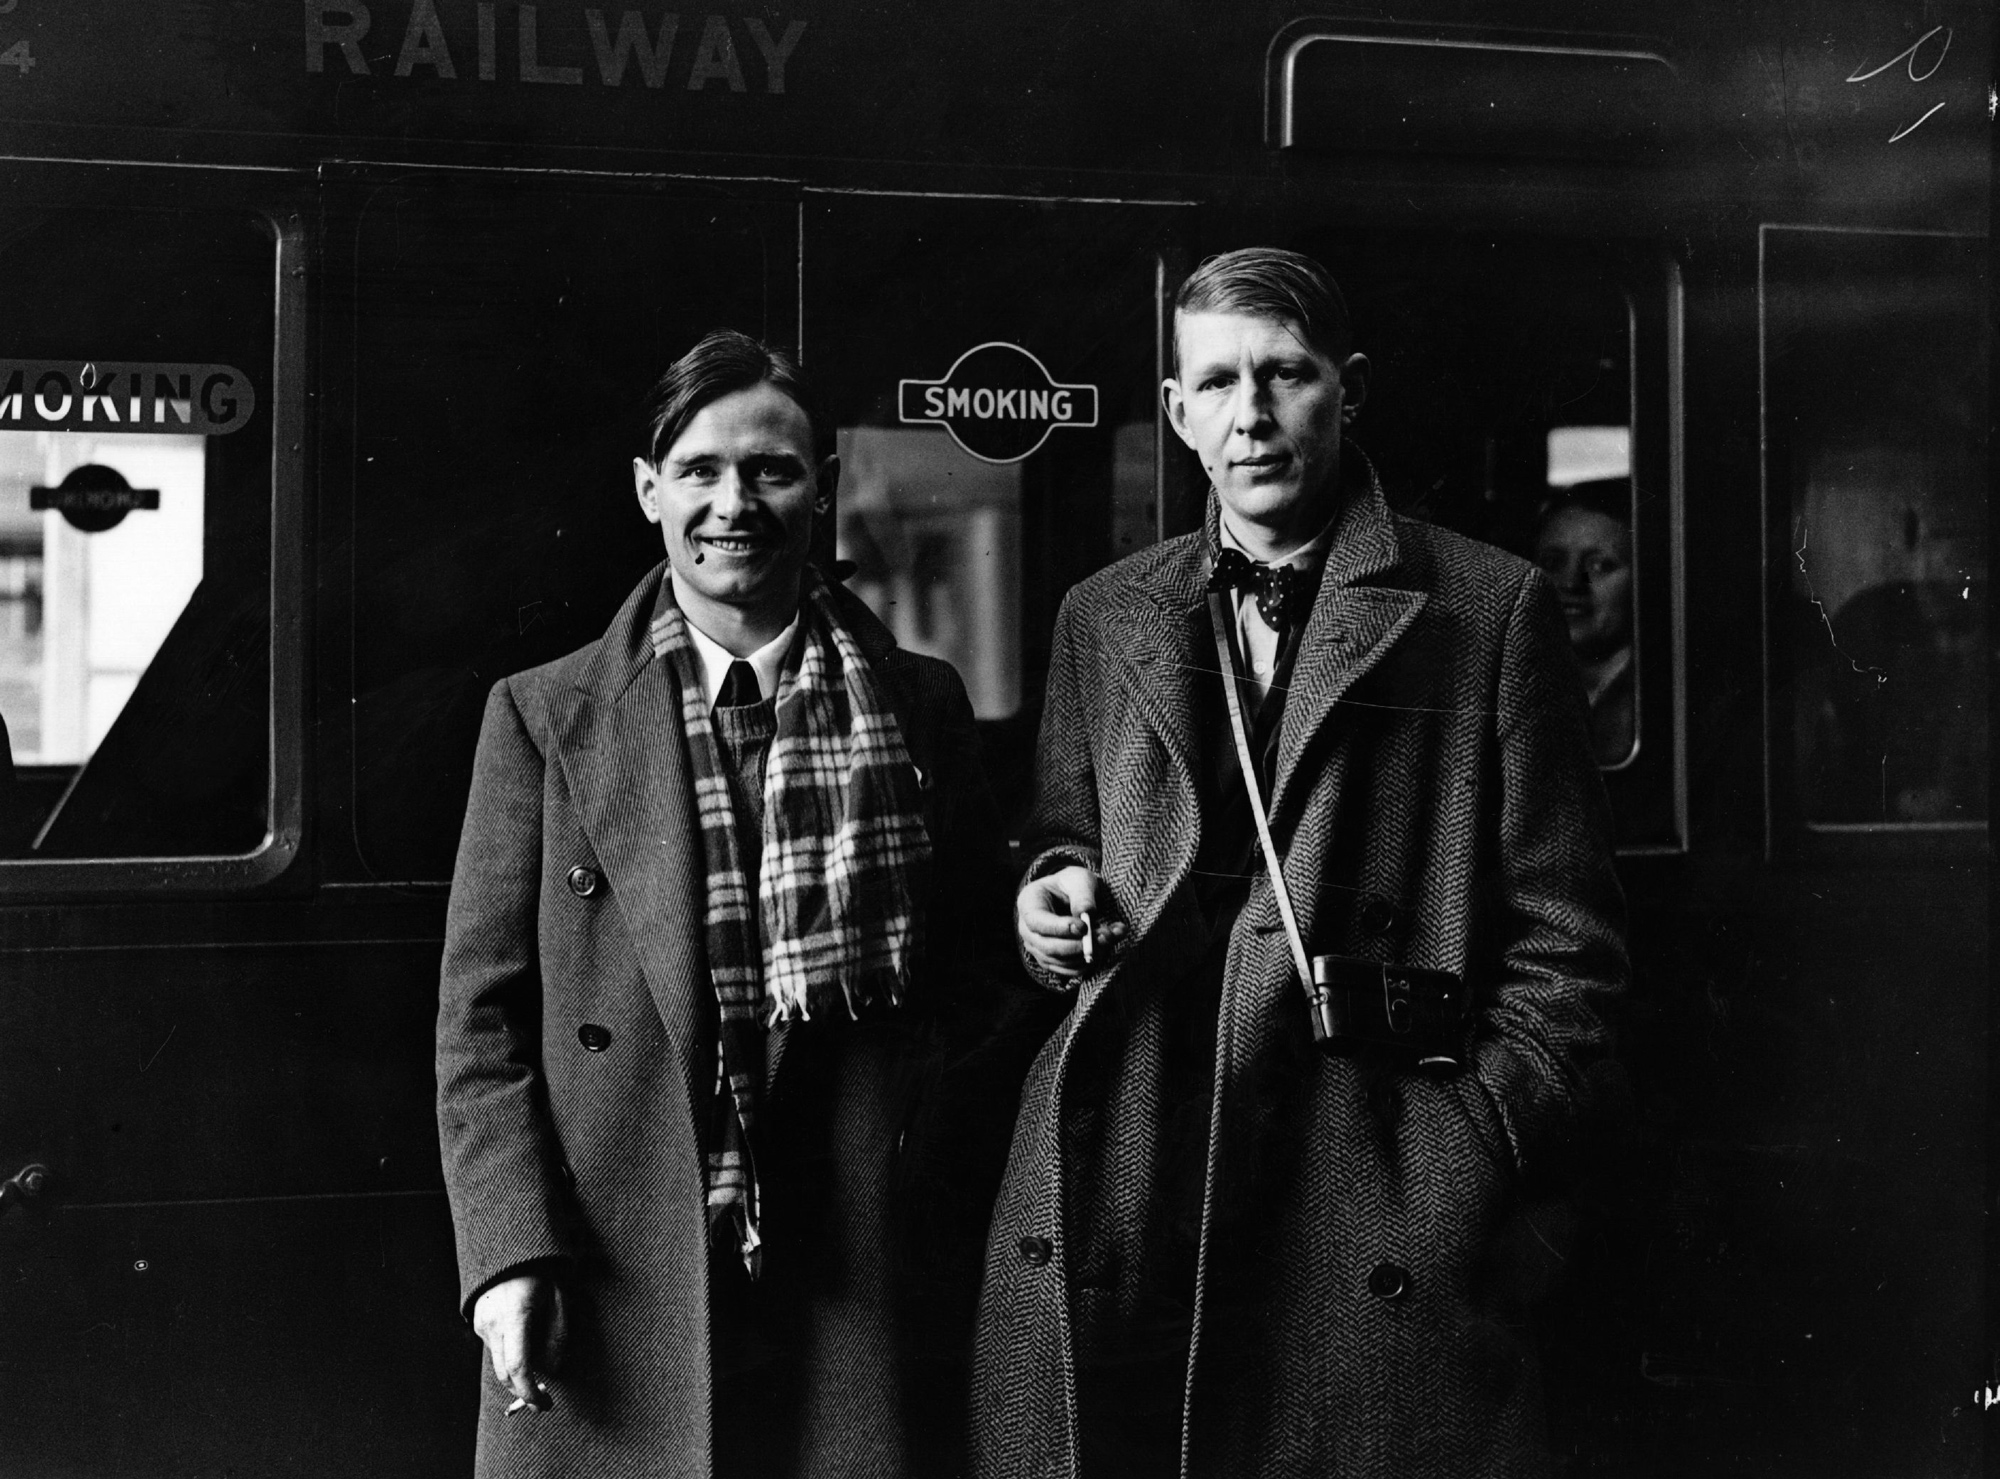 Auden and Isherwood leaving for China in 1938